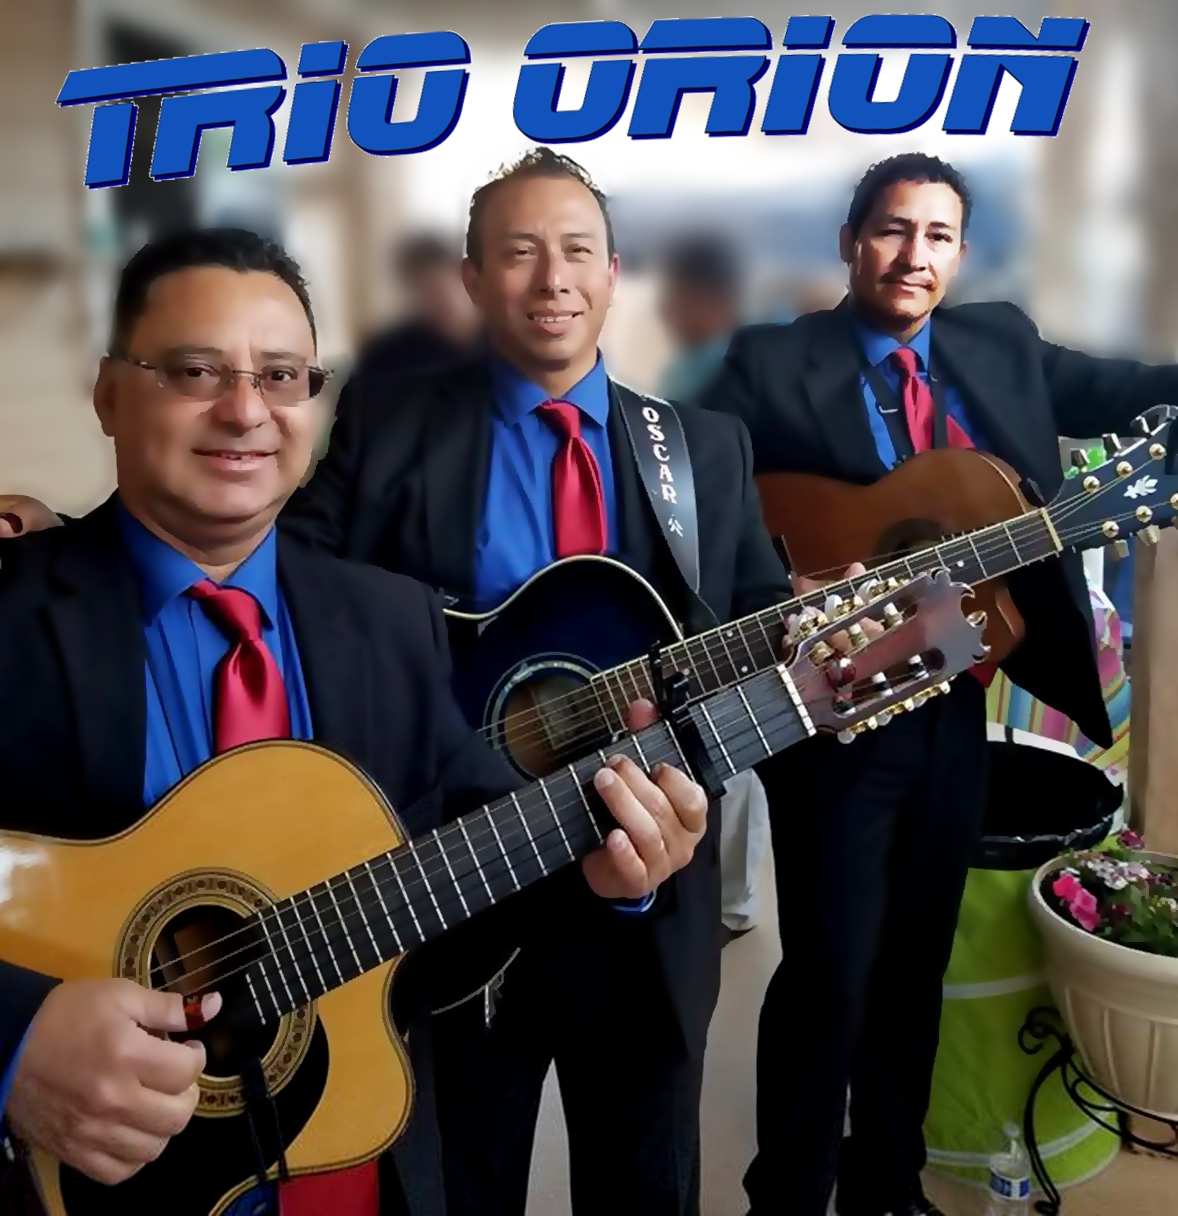 Trio Orion